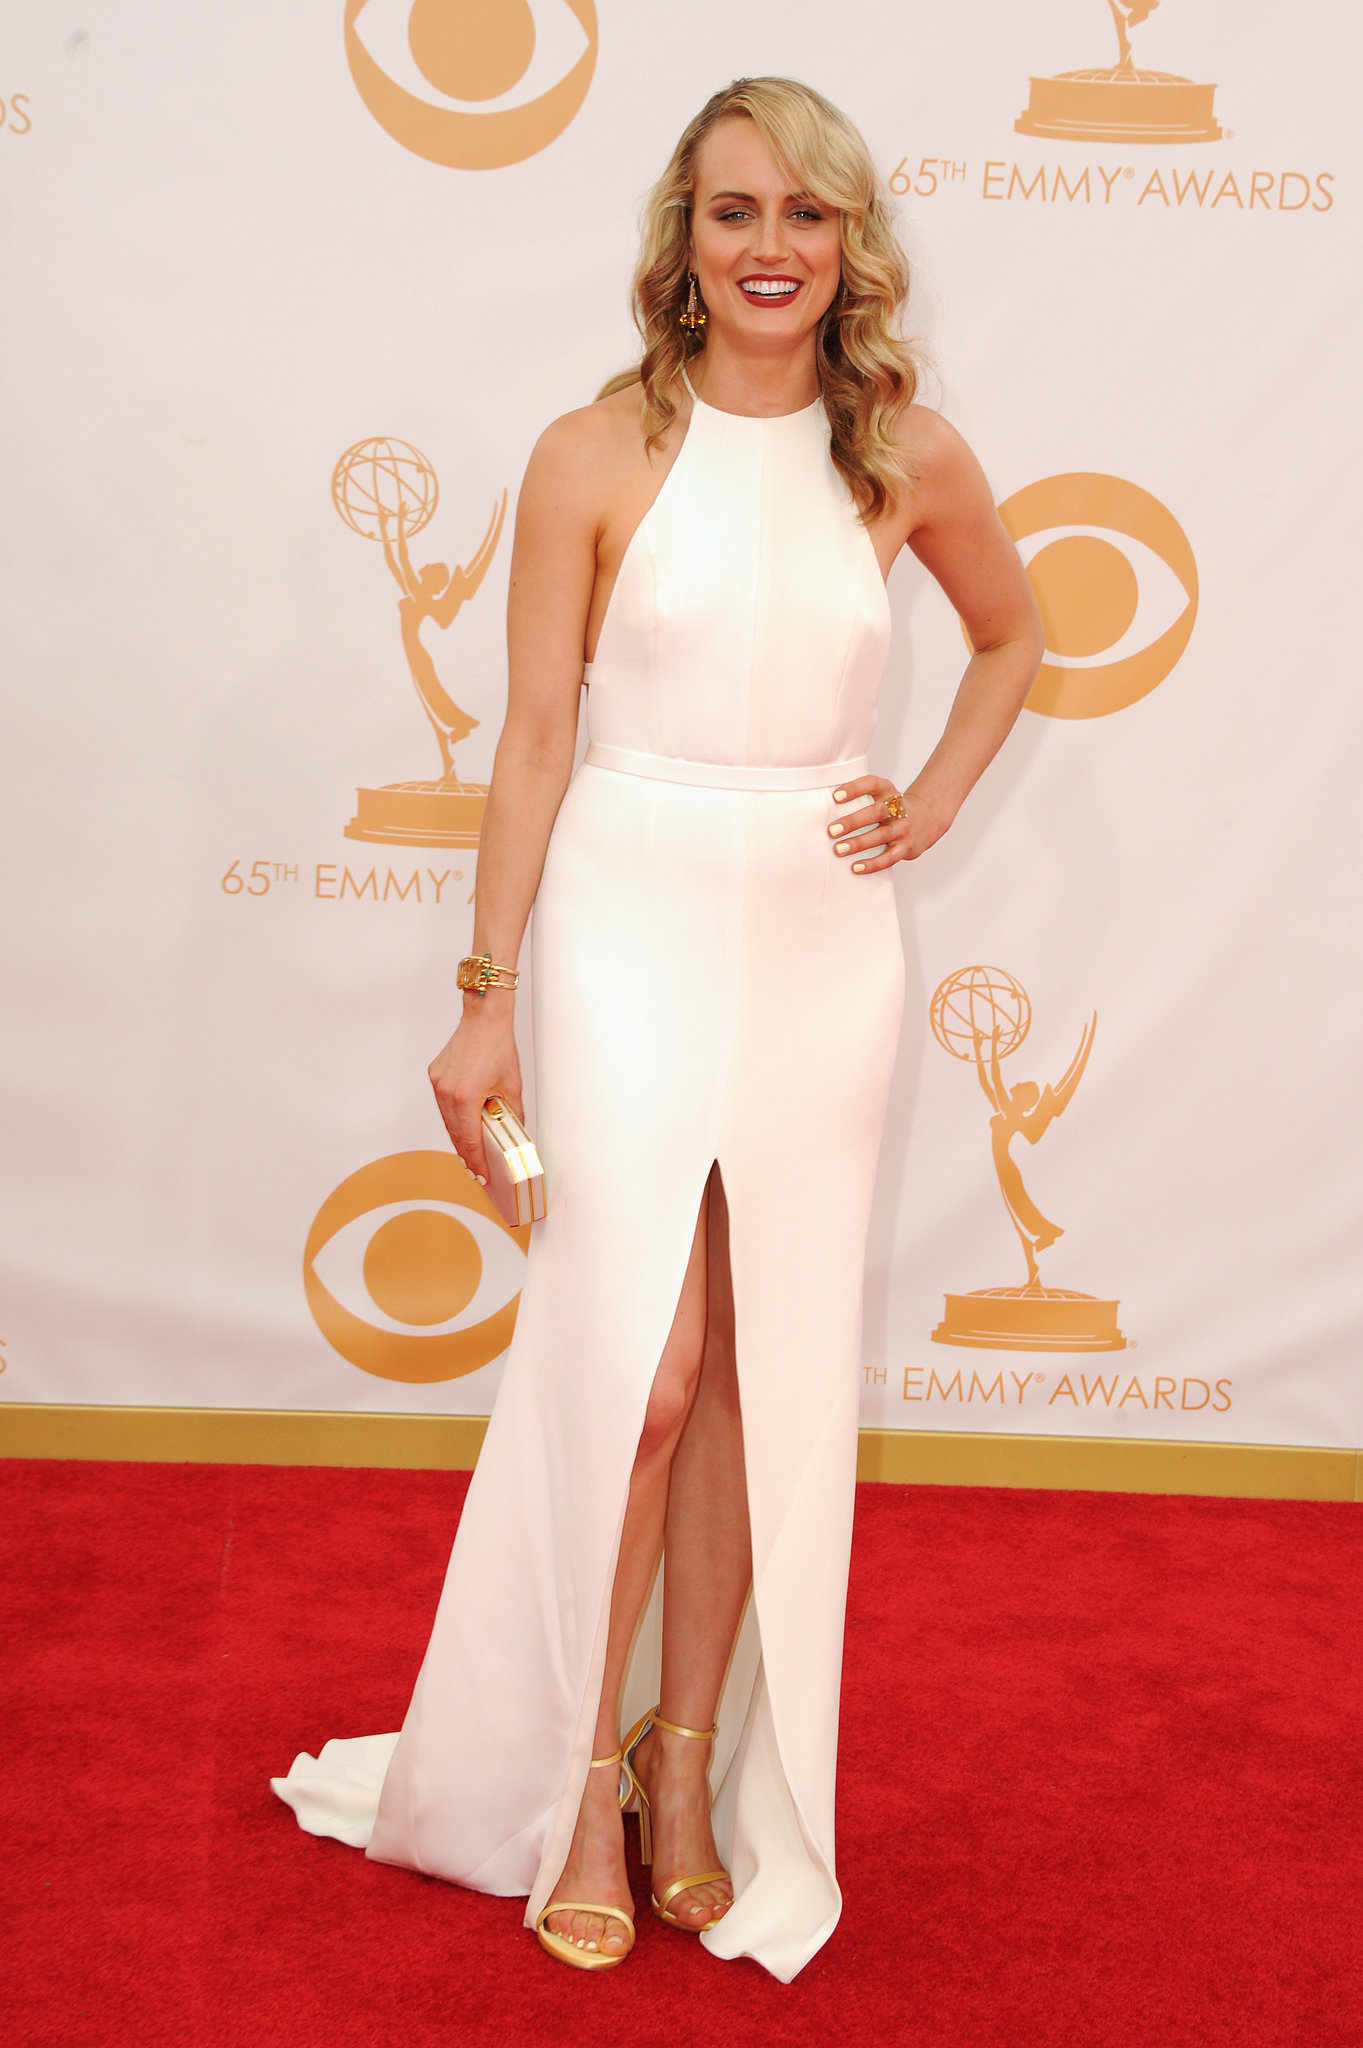 Netflix darling Taylor Schilling came to her first Emmys in style with a custom-made Thakoon dress. Finishing off the look were a pair o